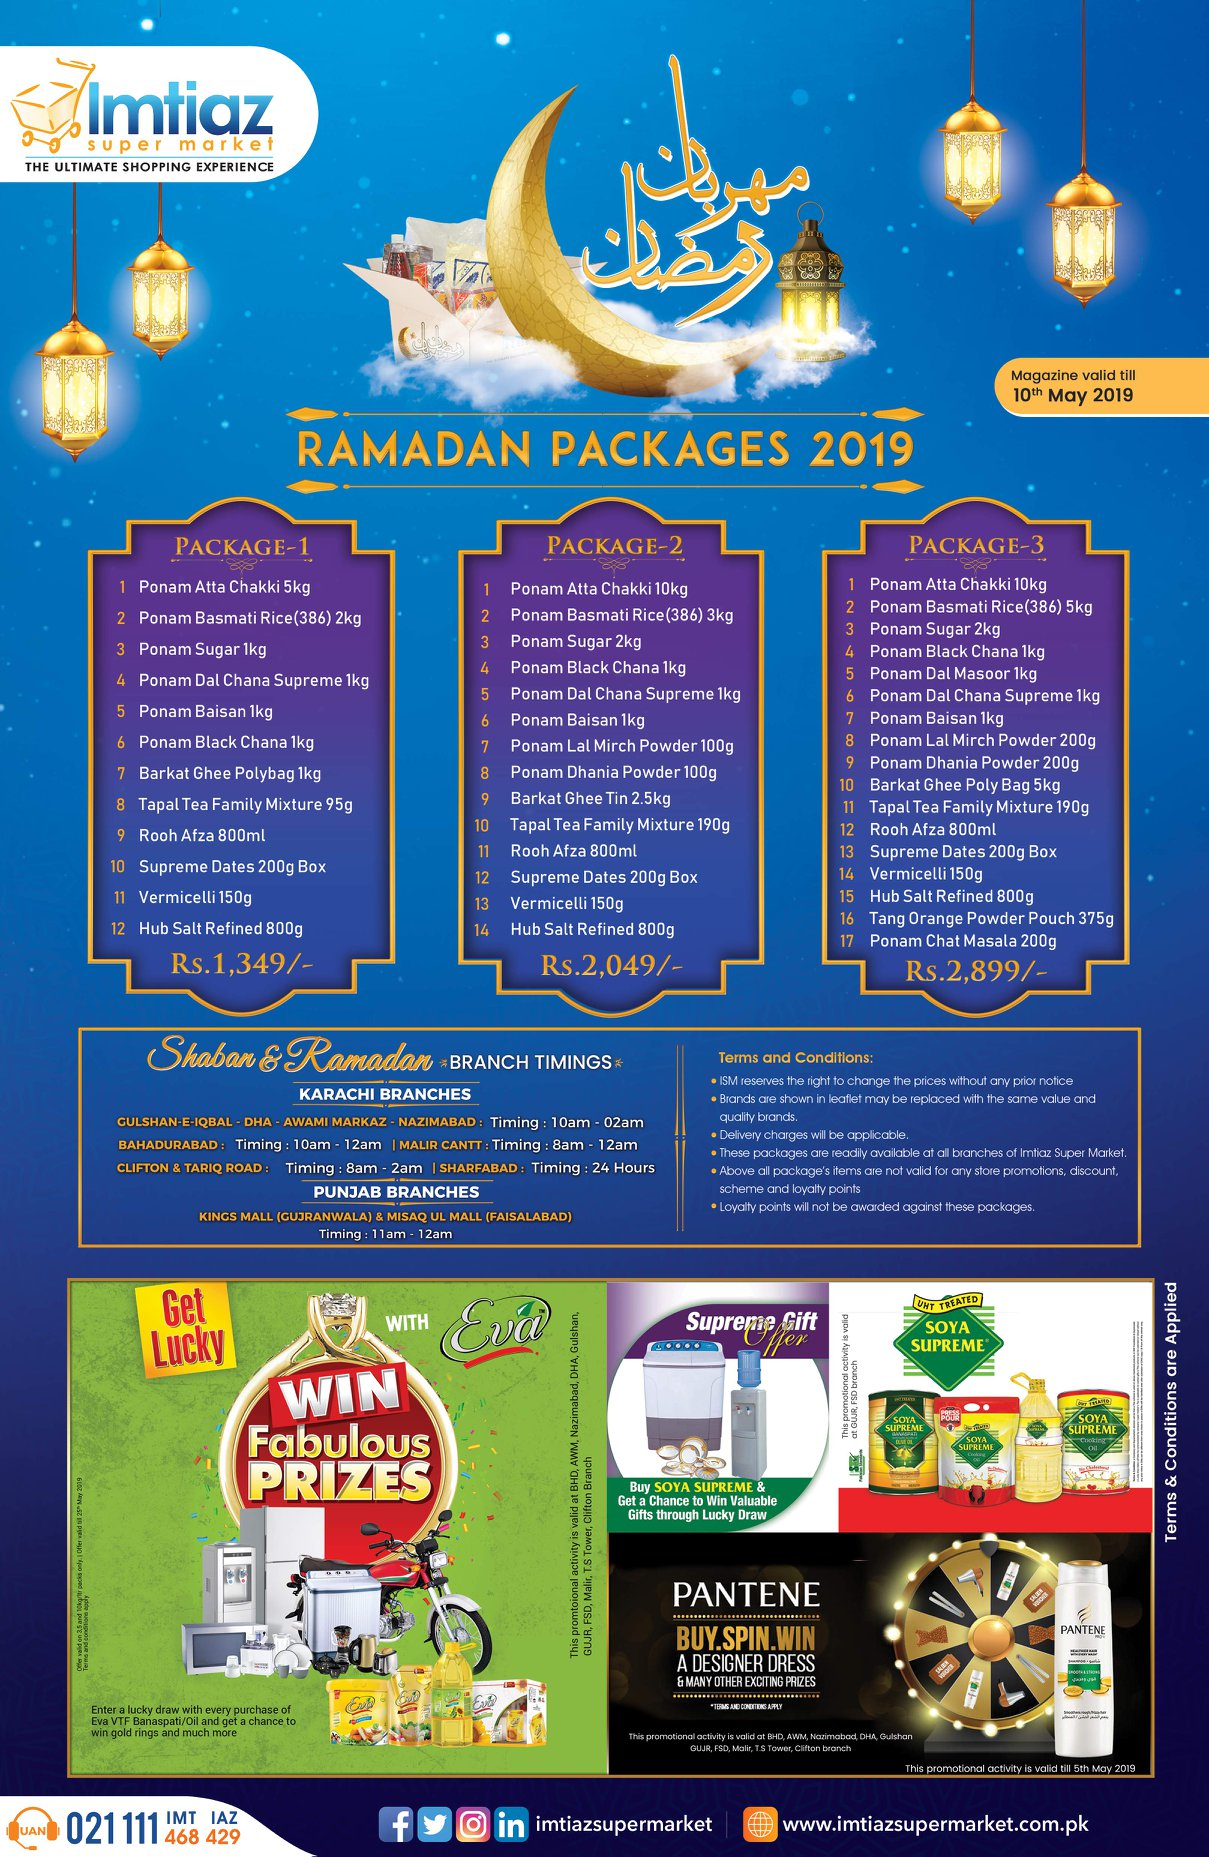 Imtiaz Super Market Ramadan Price List and Grocery Packages